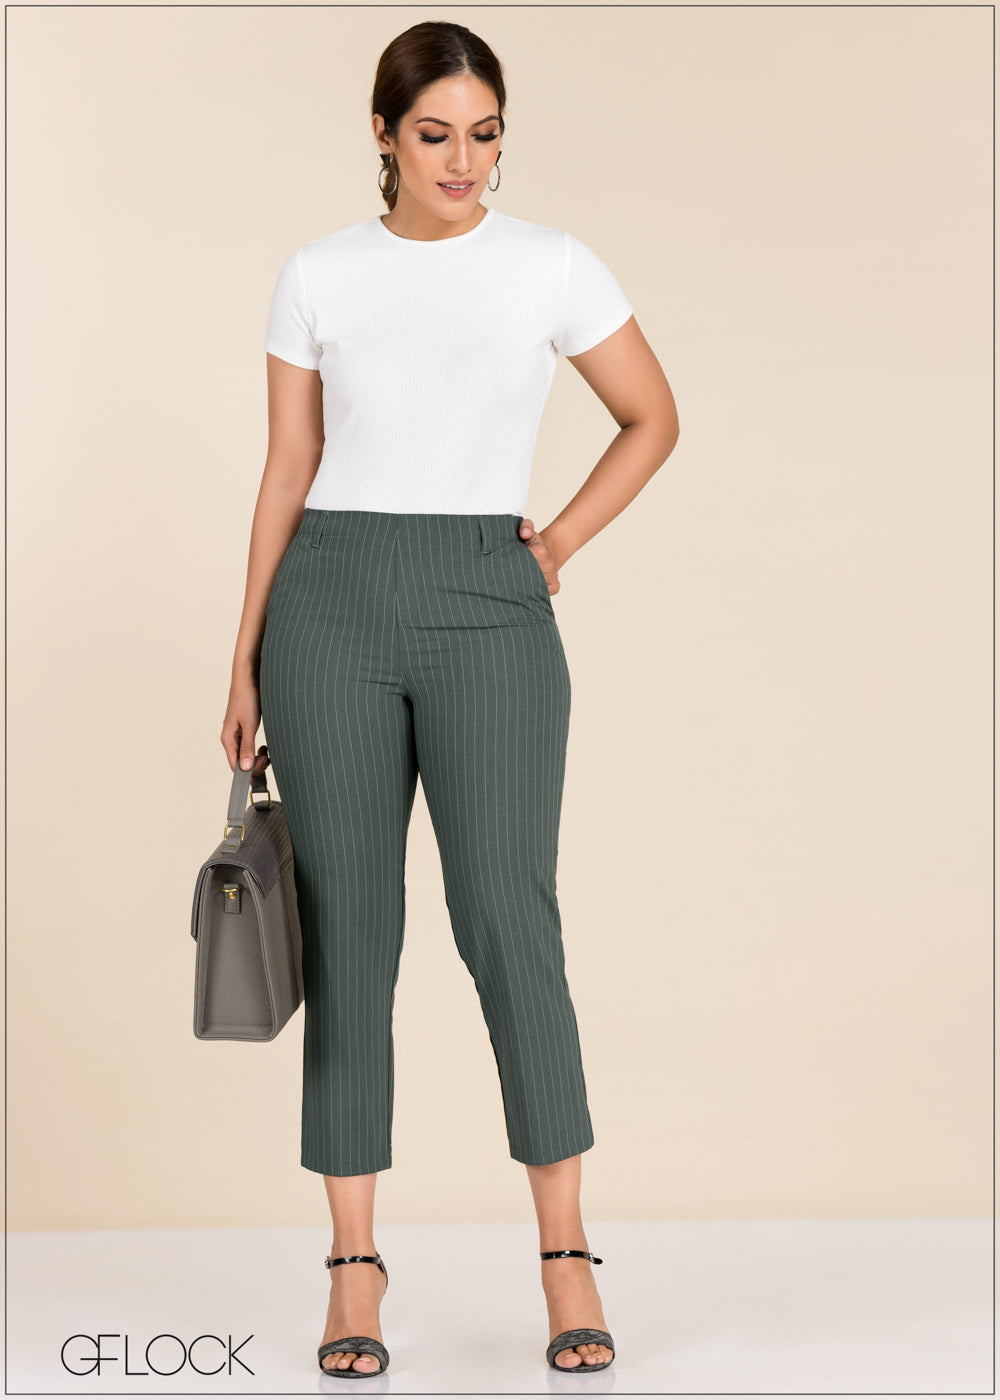 Easy Ankle Pant - GFLOCK.LK